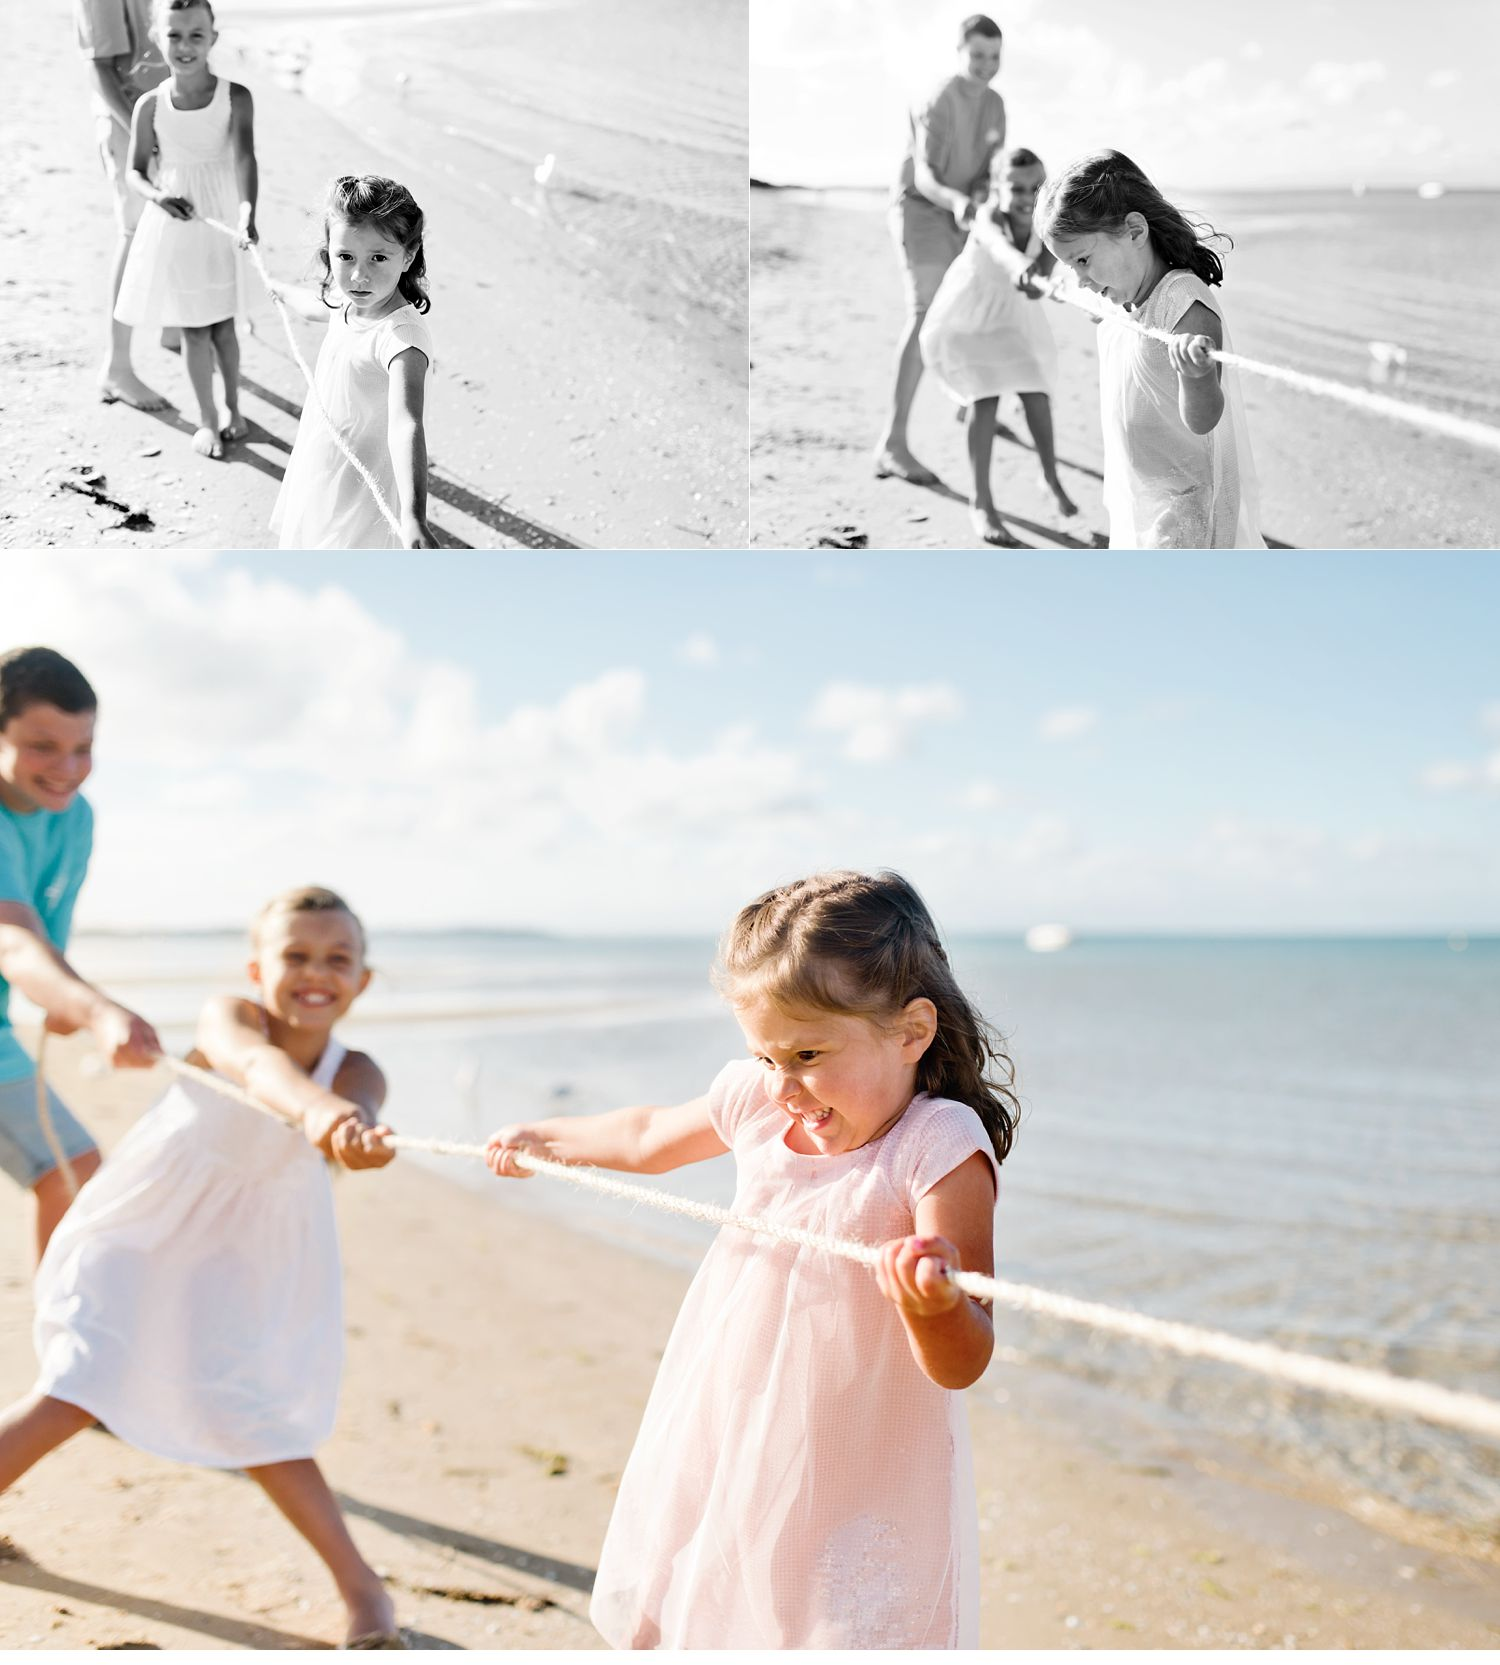 bec-stewart-photography-extended-family-photography-session-melbourne-australia-city-of-casey-30.jpg